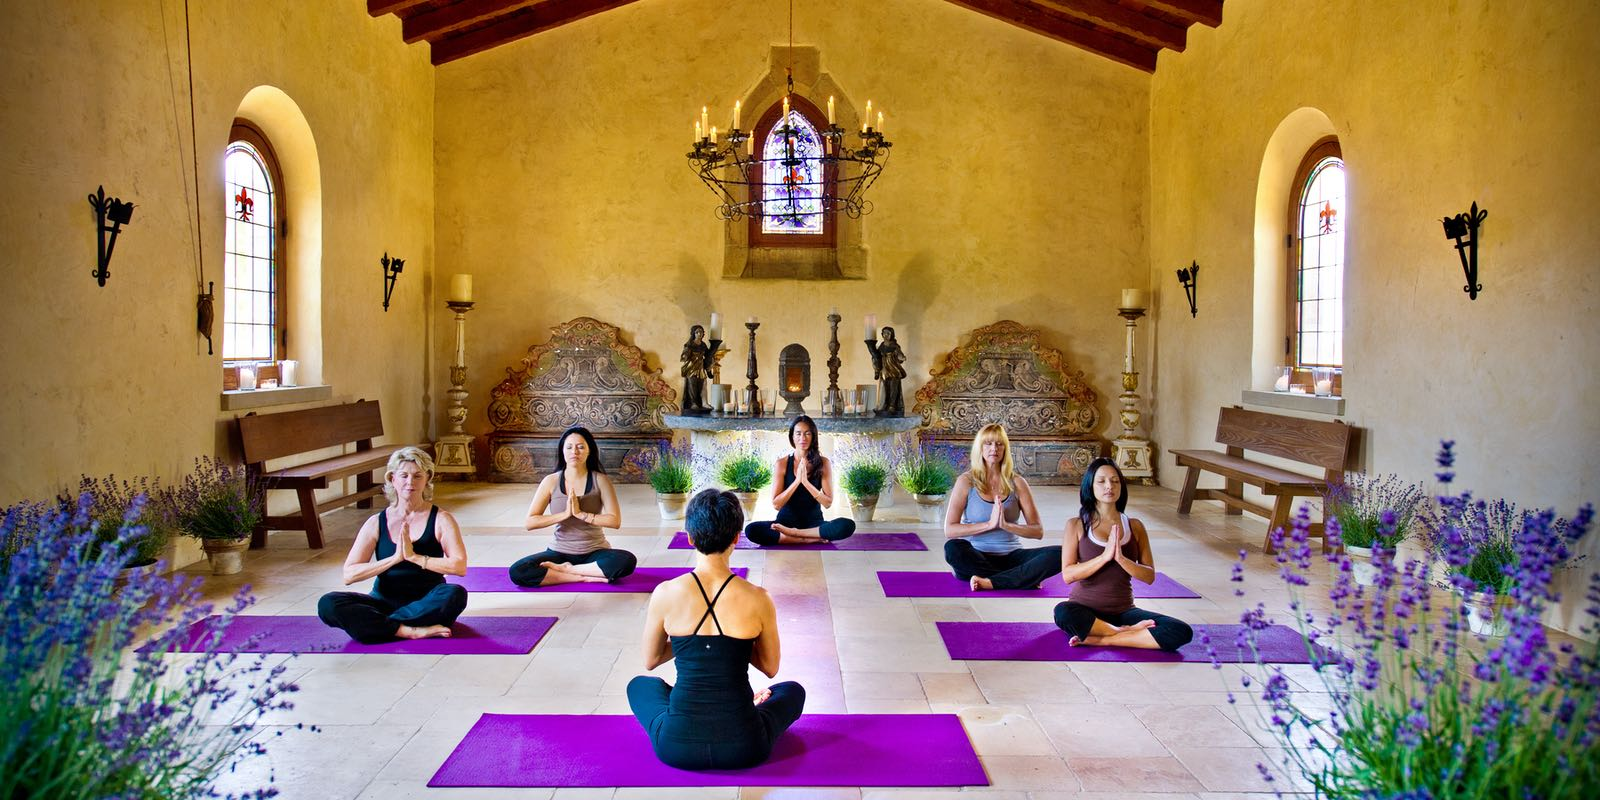 Cal-a-Vie - 9 Wellness Retreats & Spas to Rejuvenate at in San Diego